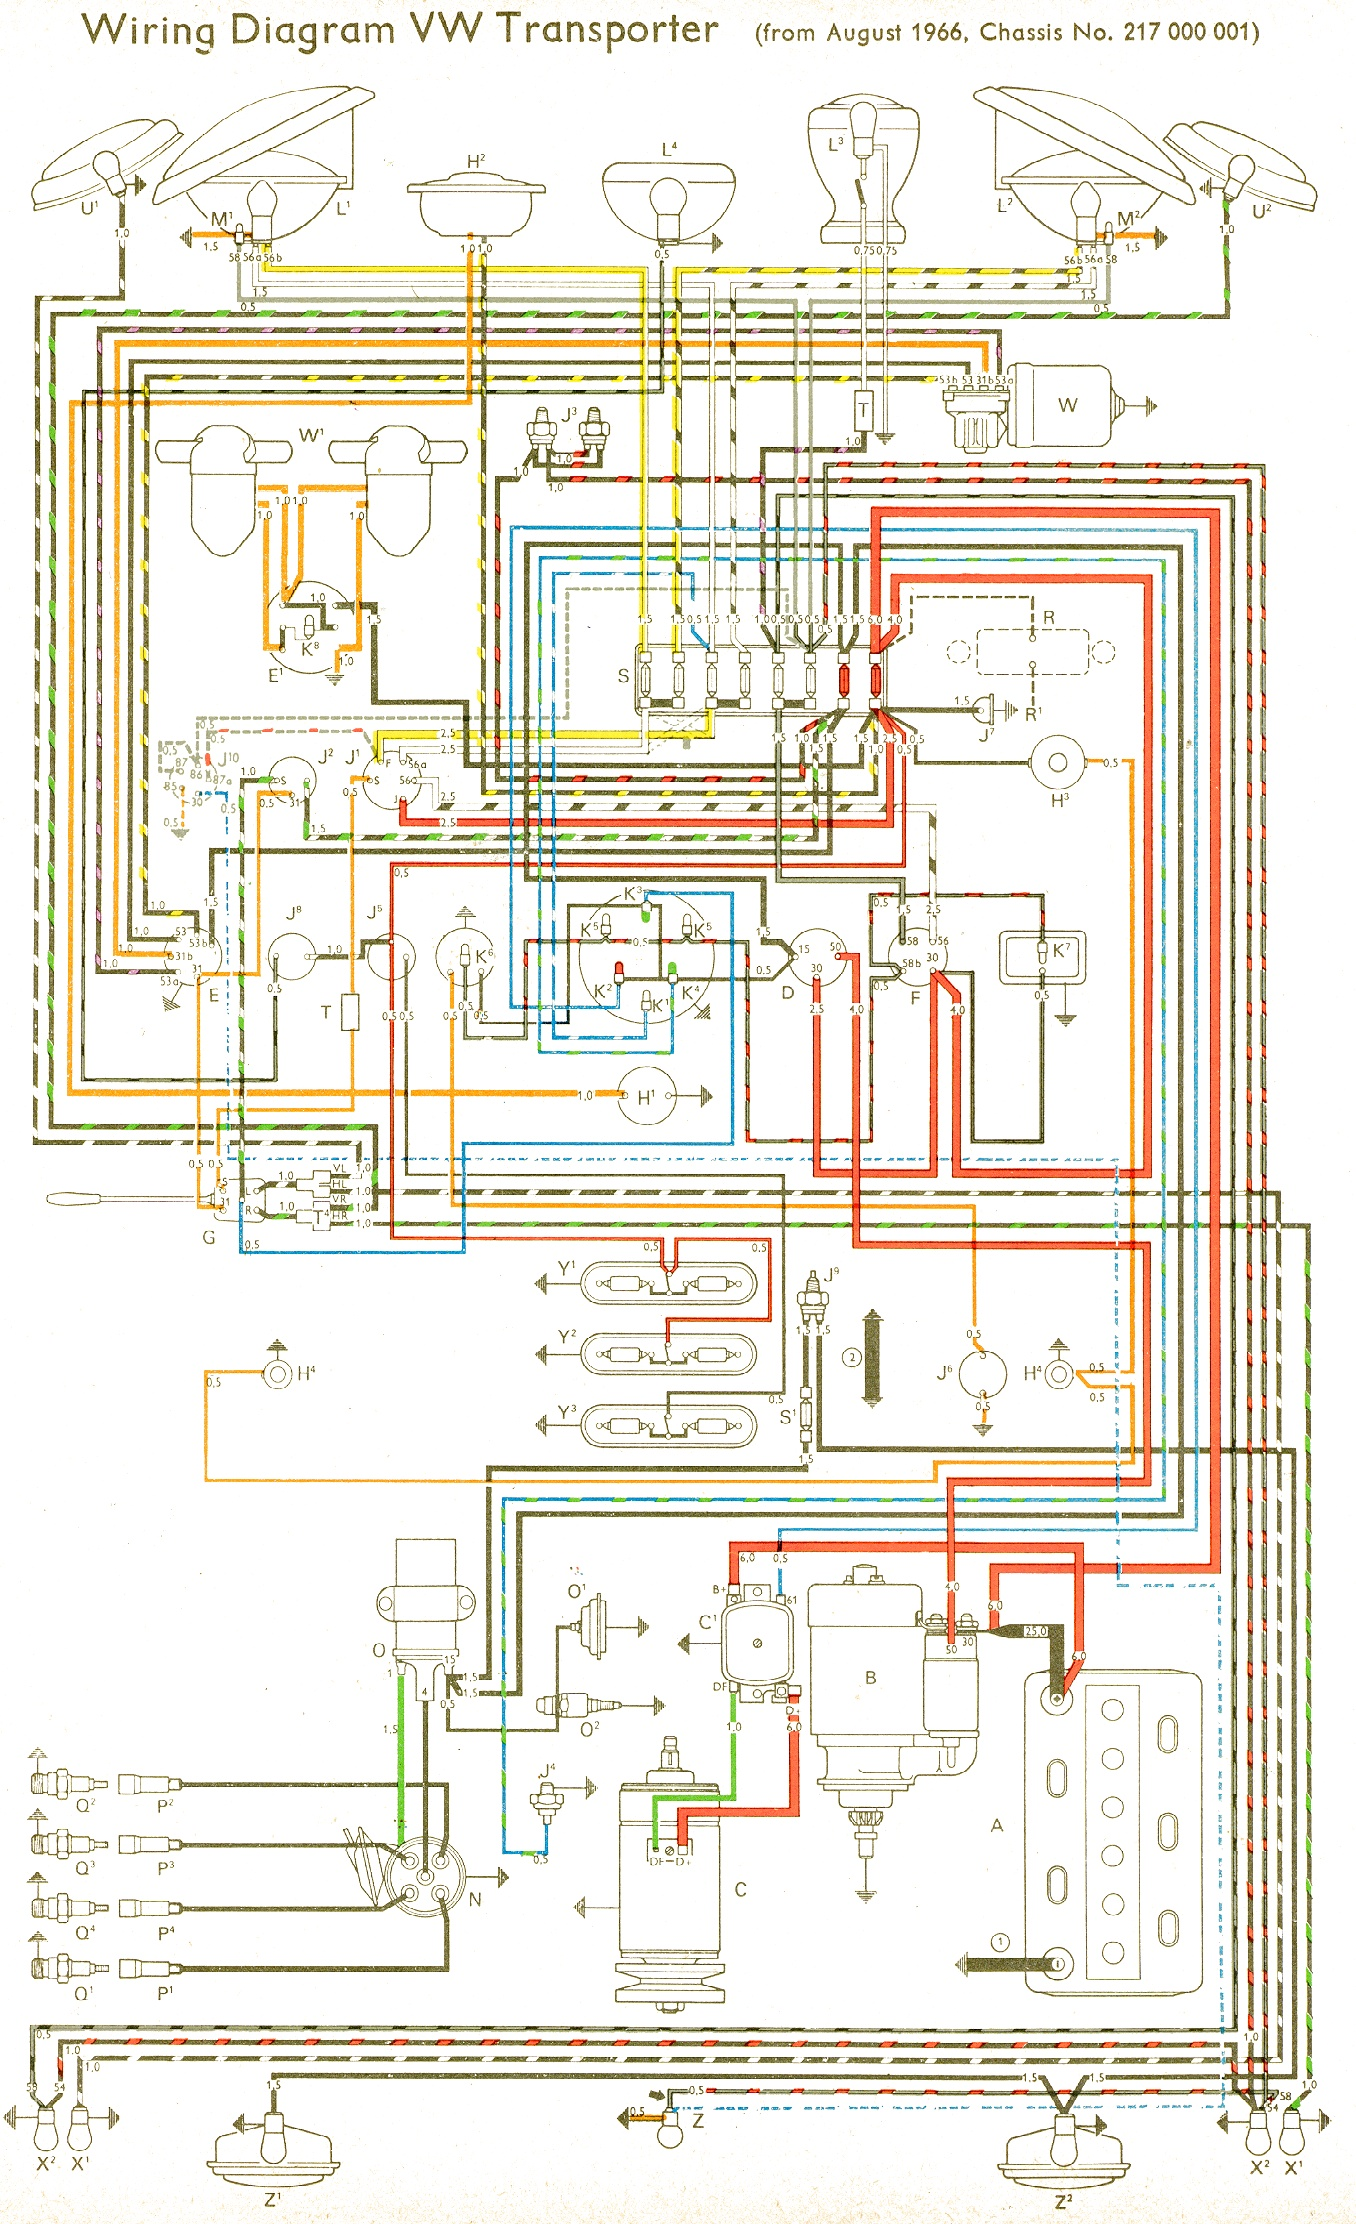 bus 66 bus wiring diagram vw wiring harness diagram \u2022 wiring diagrams j 1971 vw bus wiring diagram at love-stories.co